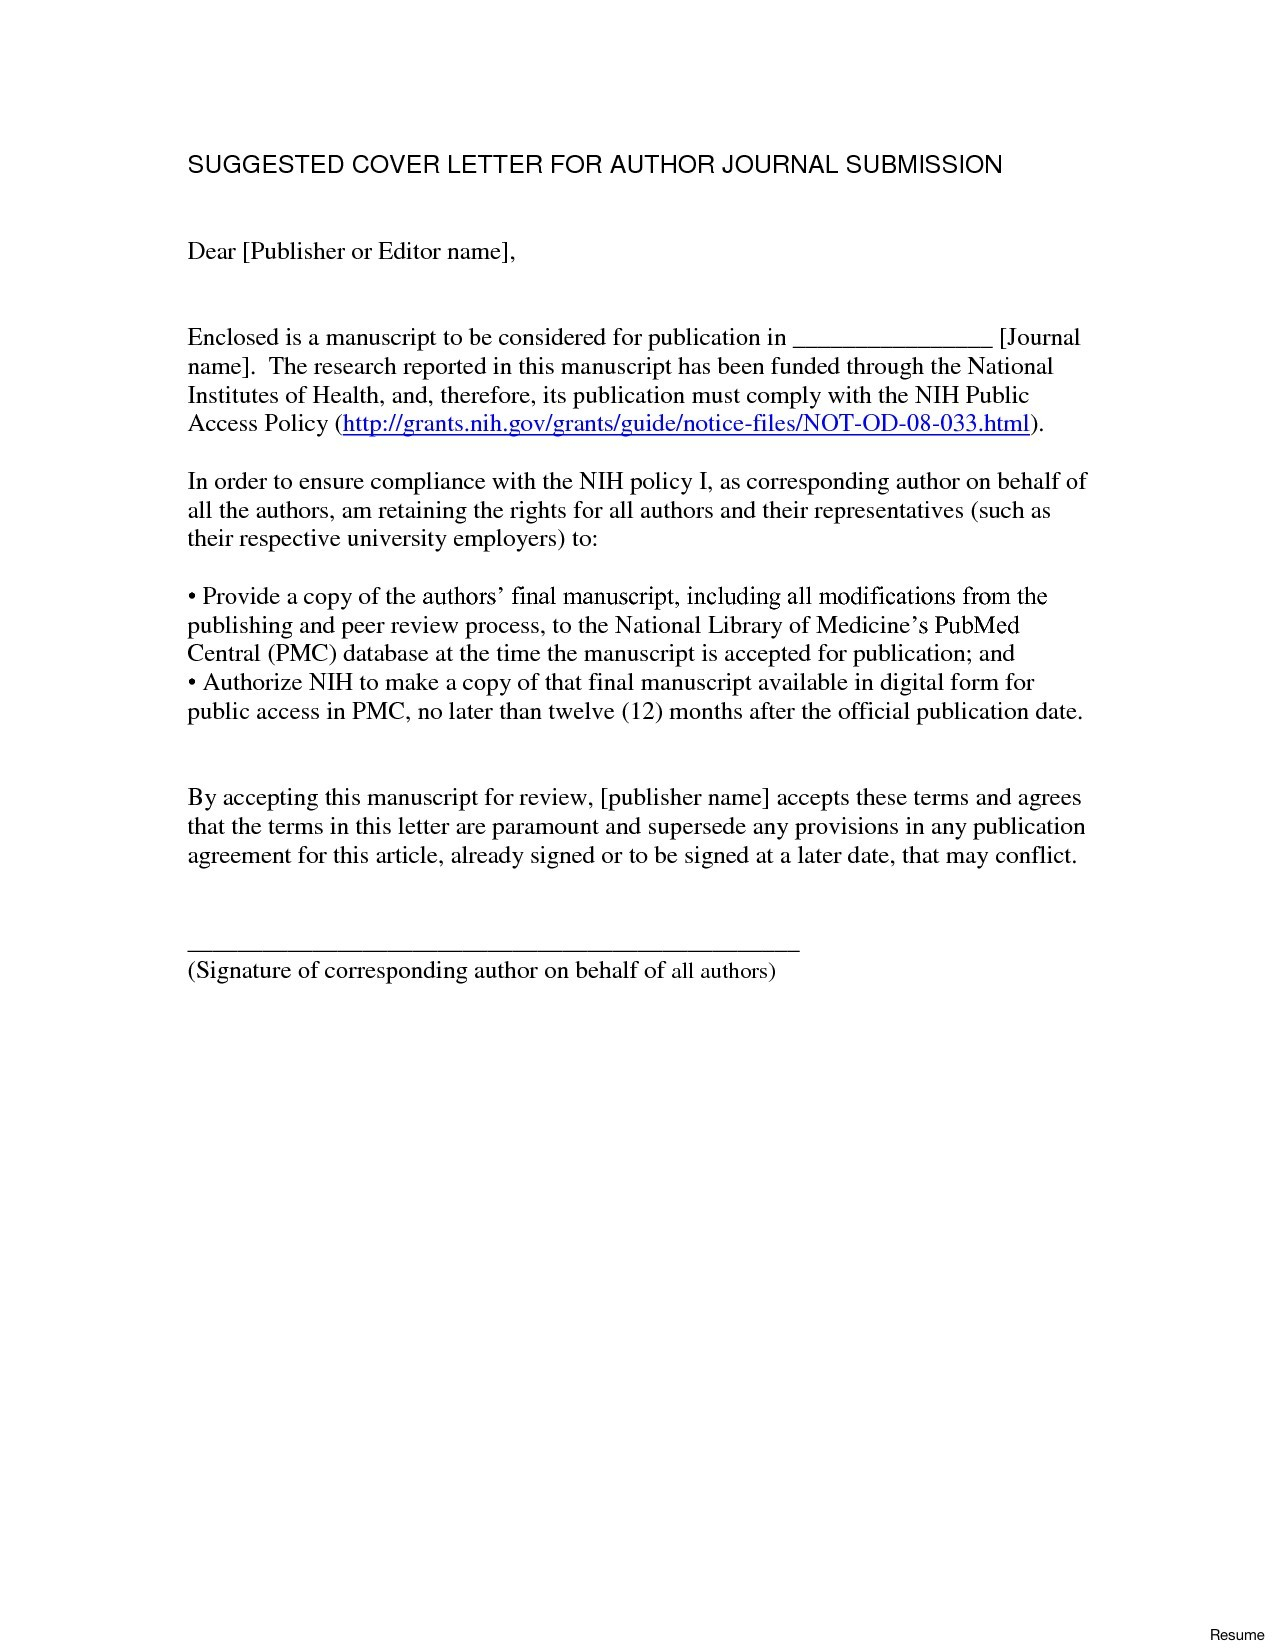 Recruitment Letter Template - Sample Recruitment Letter Refrence Template for Board Directors